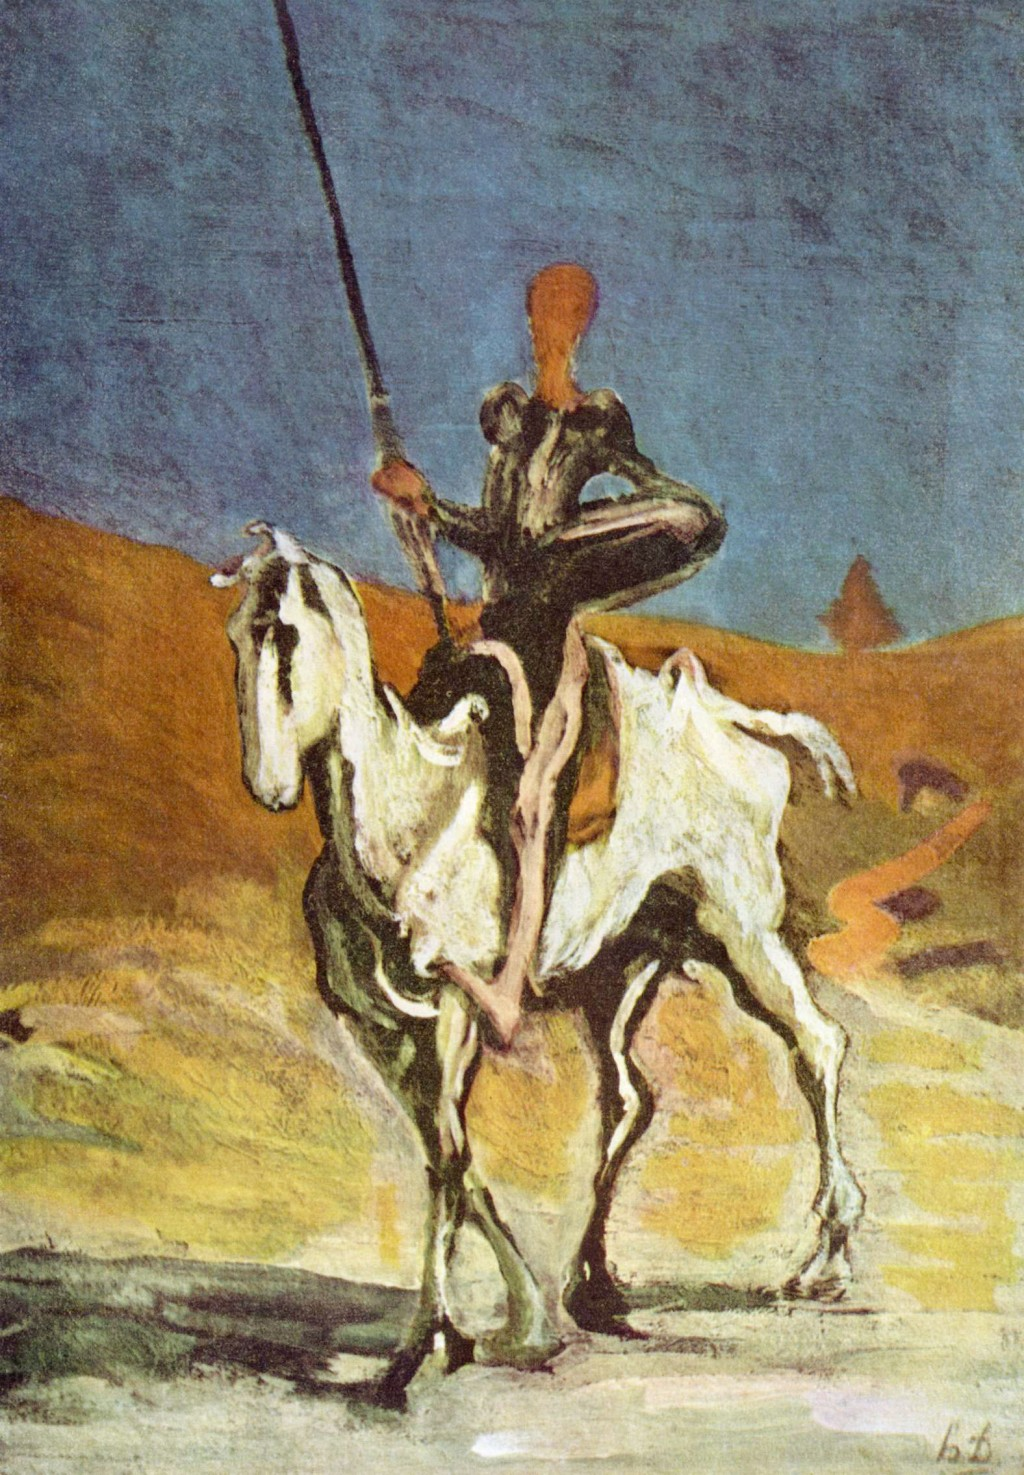 Don Quijote and Sancho Panza drawn by Honoré Daumier. Image: Verlagsgesellschaft mbH under the GNU Free Documentation License.